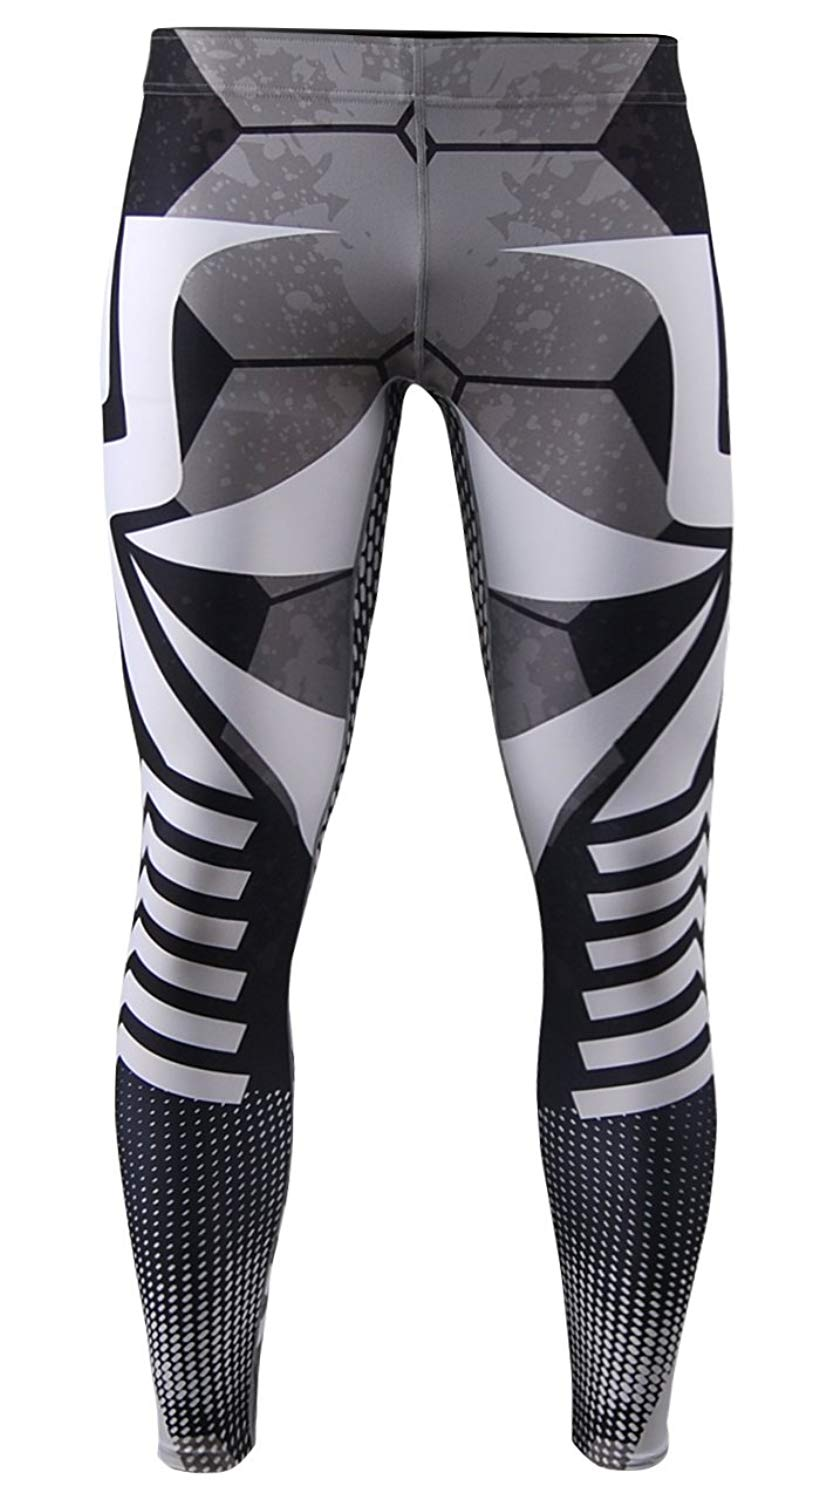 8d20b28b88 Get Quotations · zipravs Mens Athletic Compression Base Layers Running  Exercise Fitness MMA Pants Tights